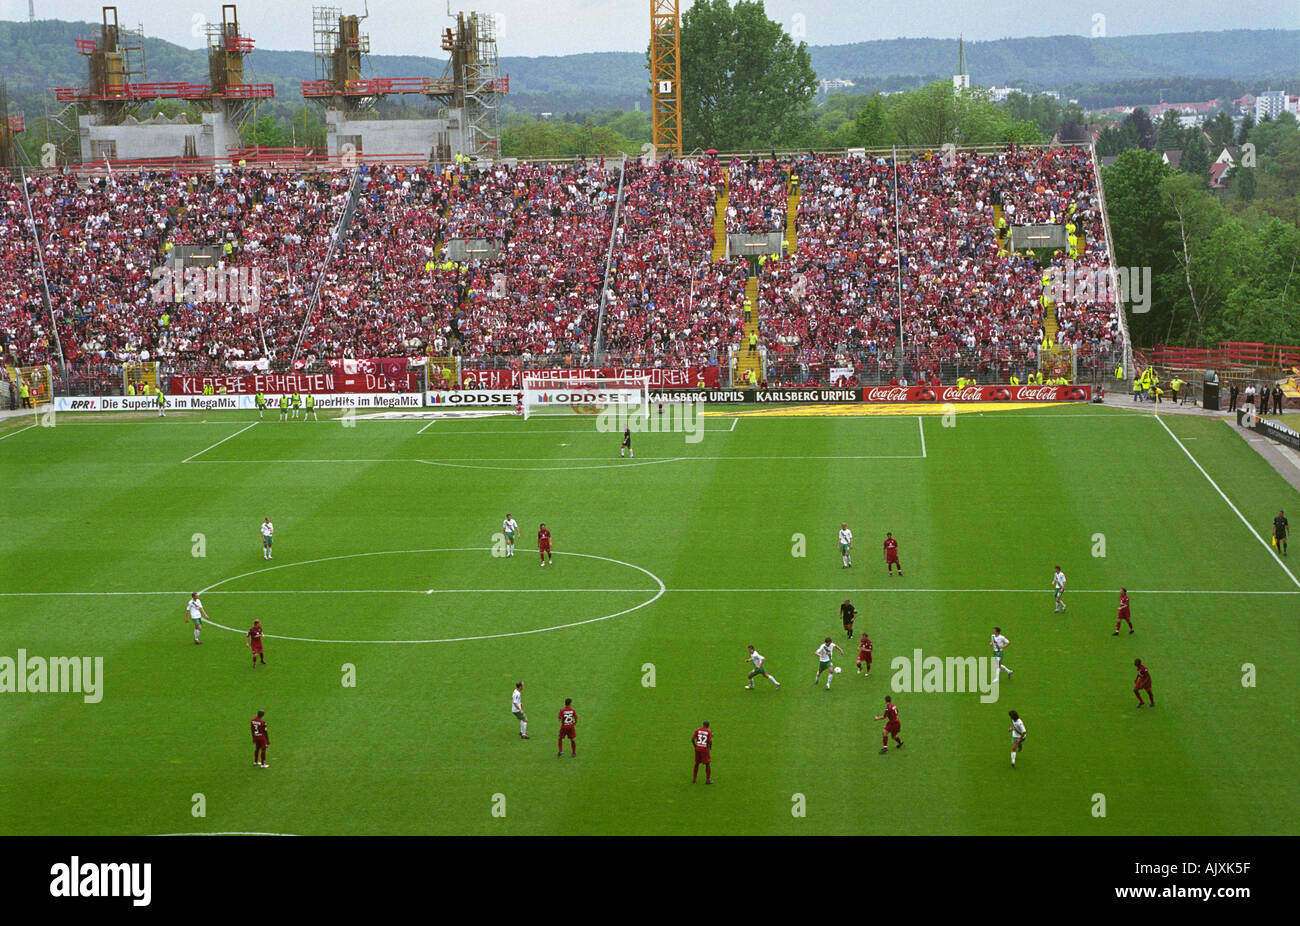 Fritz-Walter-Stadion during redevelopment for the 2006 World Cup finals, Kaiserslautern, Germany. - Stock Image